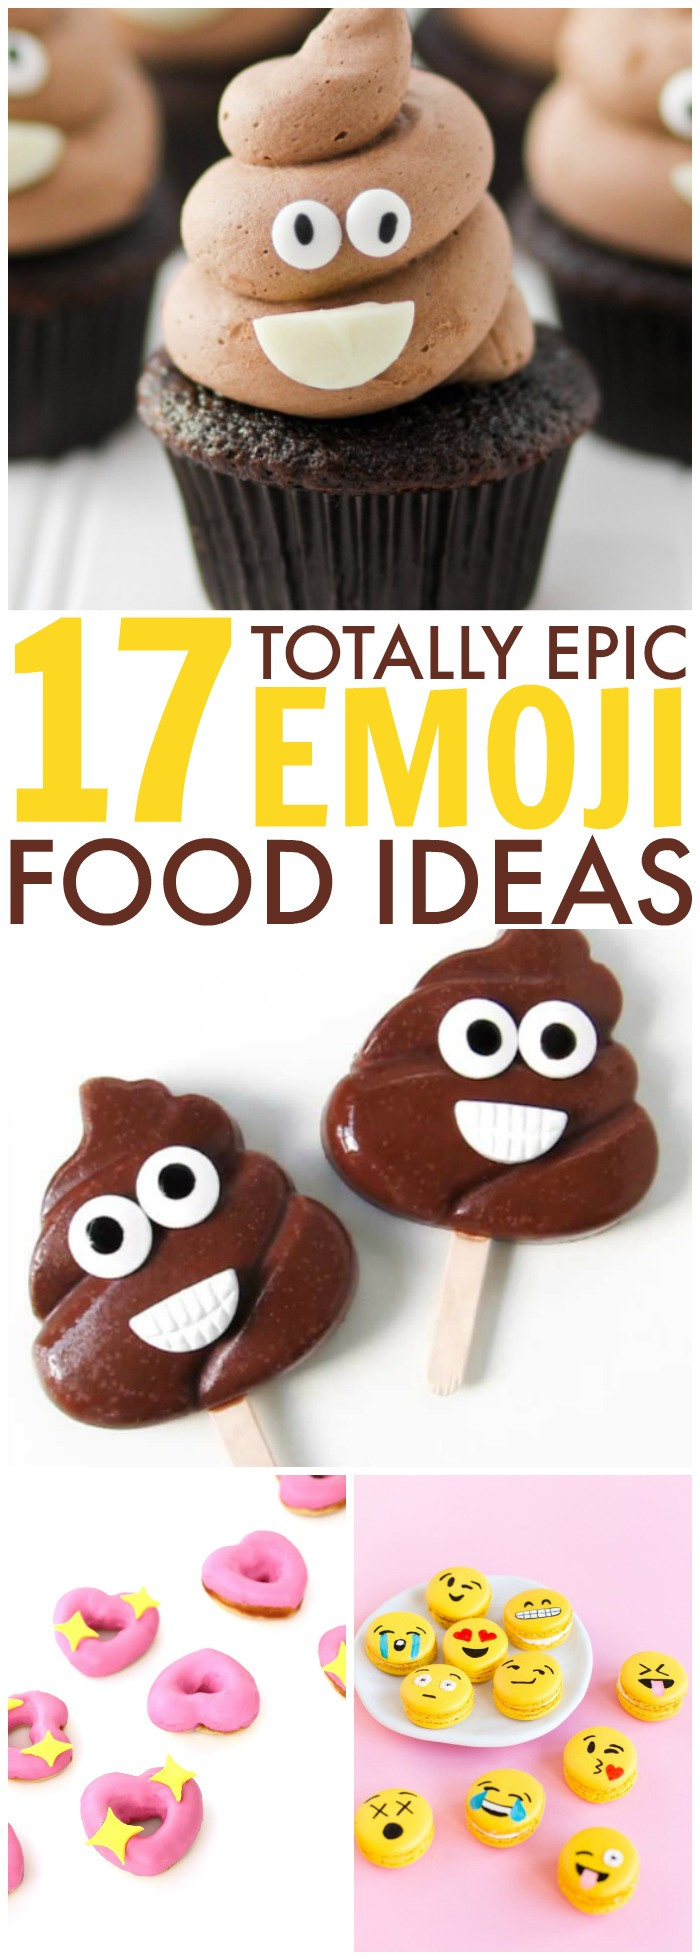 17 Totally Epic Emoji Food Ideas for Your Emoji Themed Party